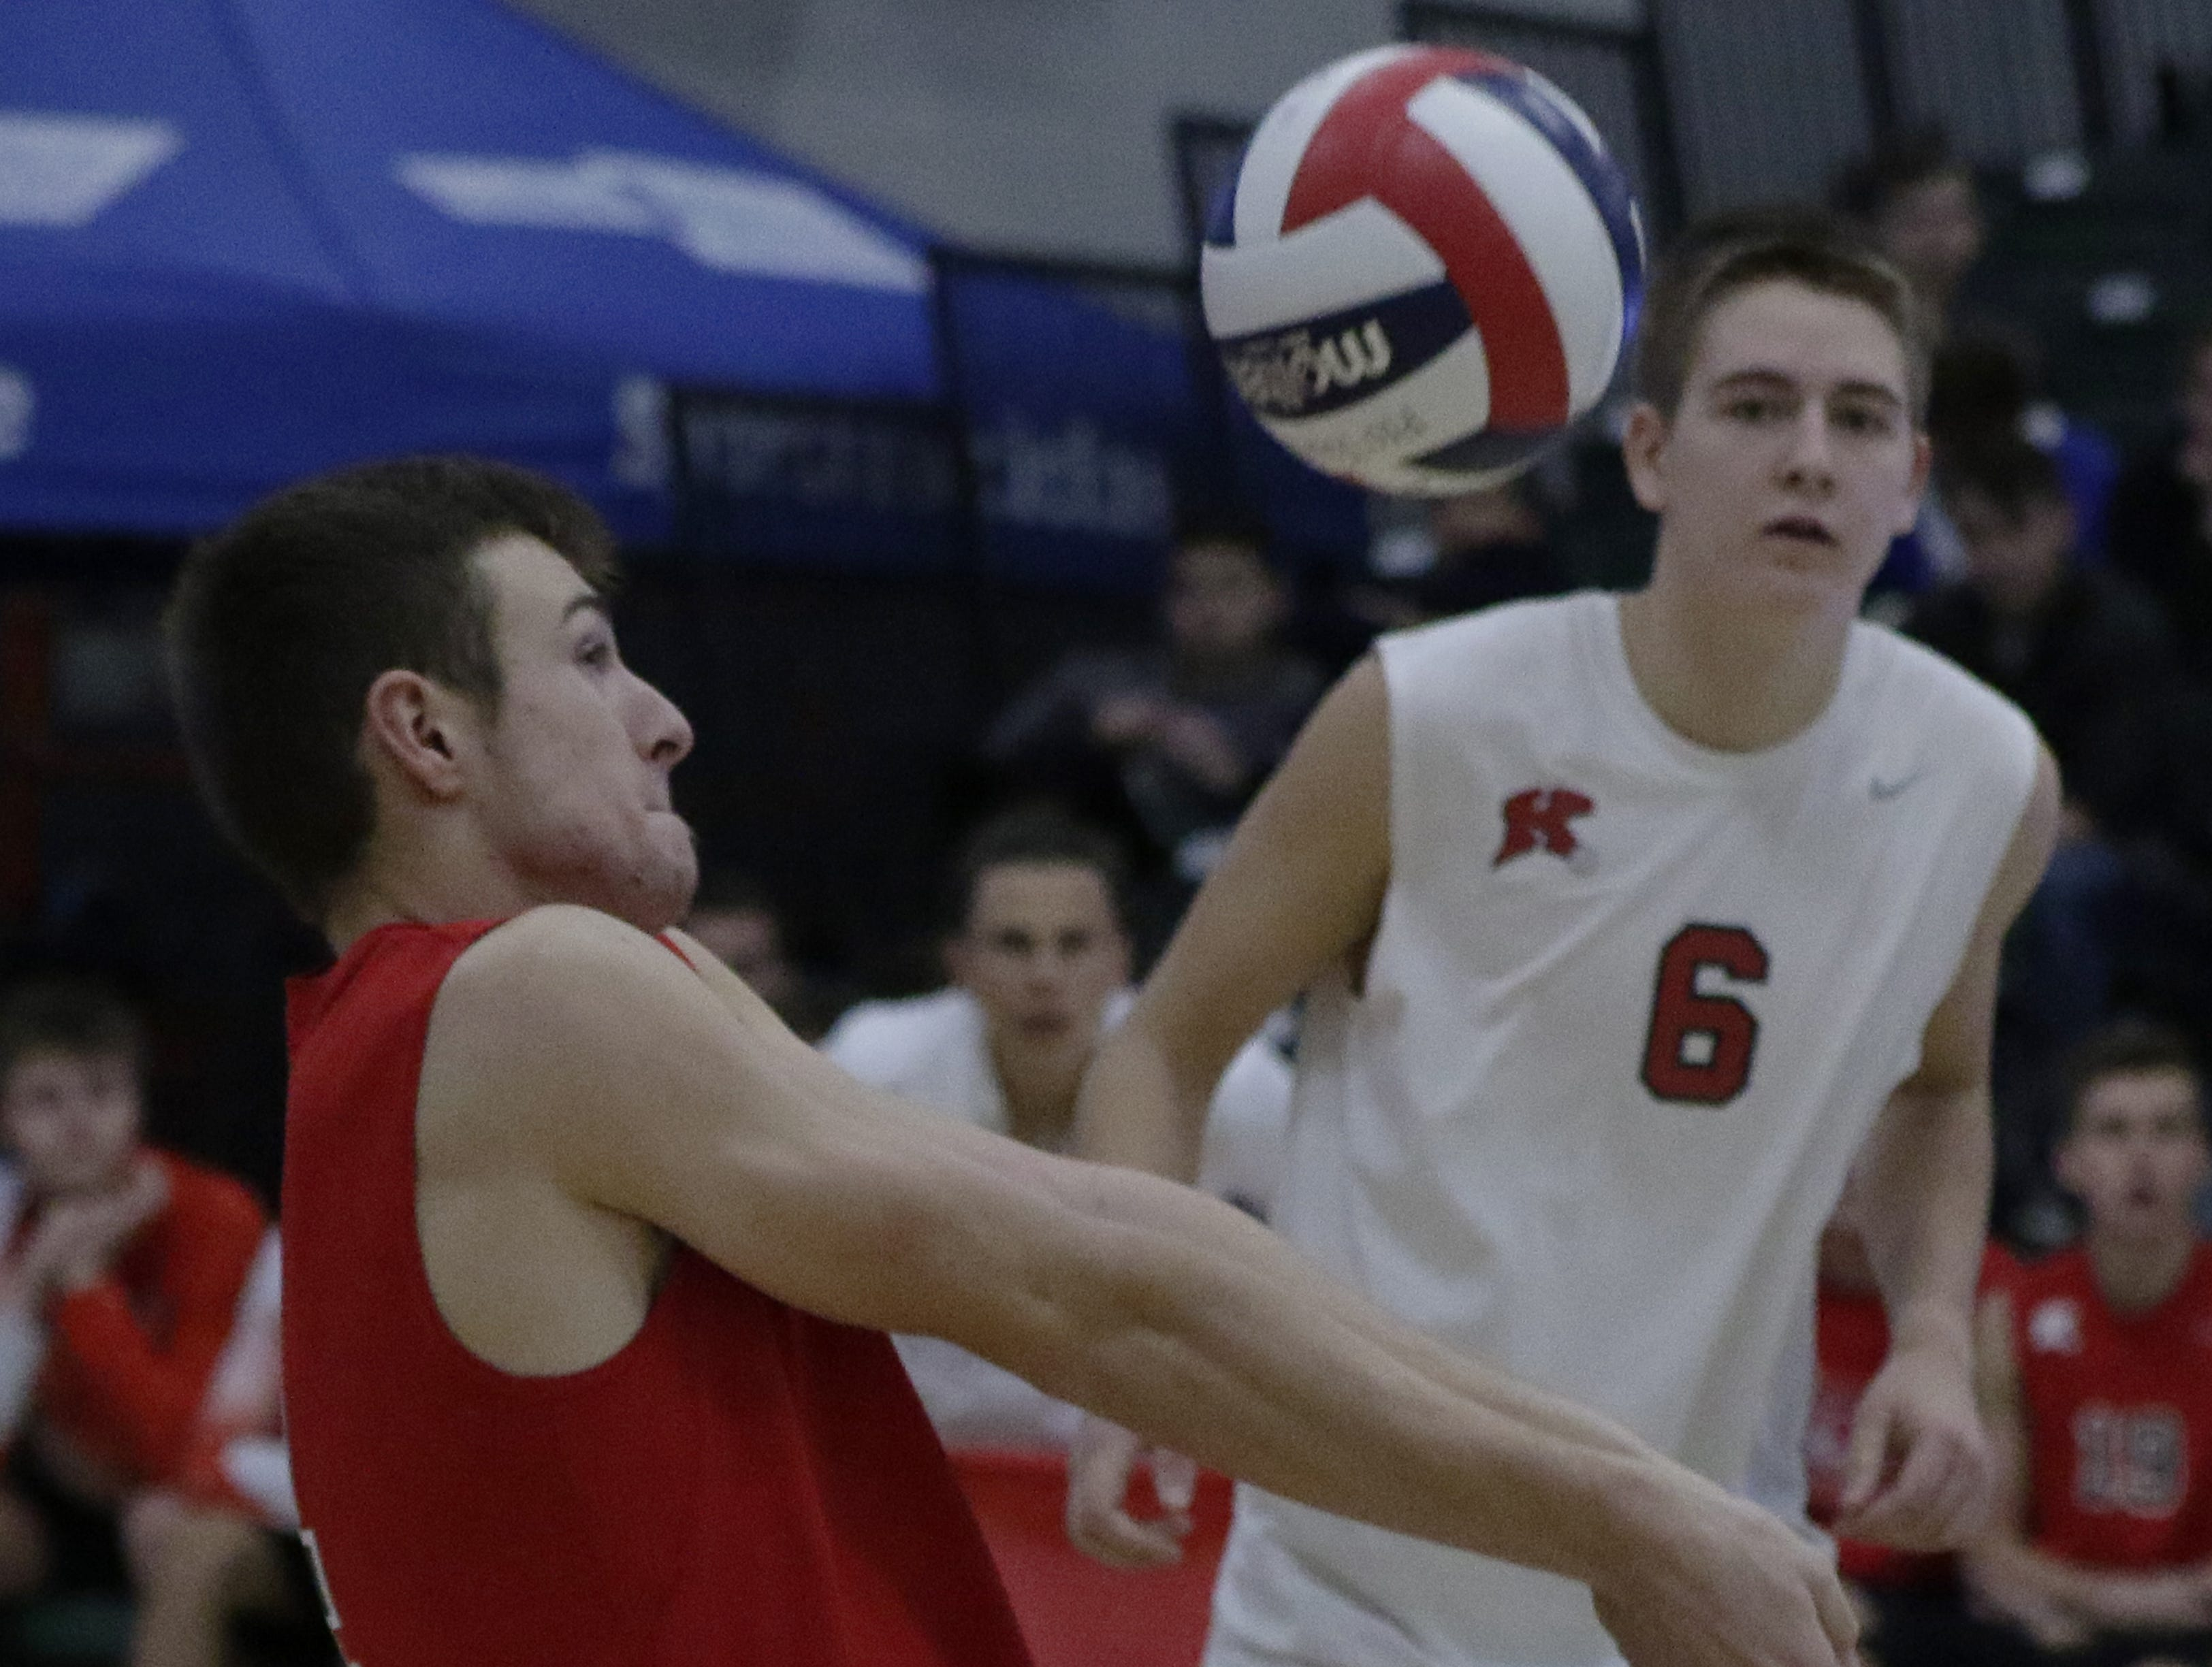 Kimberly's Trey Anderson bumps up the ball after a serve.  Kimberly Papermakers played Kenosha Indian Trail Hawks in Division 1 WIAA boys volleyball playoff semi-final, Saturday, November 10, 2018 at Wisconsin Lutheran College in Milwaukee, Wis. Joe Sienkiewicz/USA Today NETWORK-Wisconsin